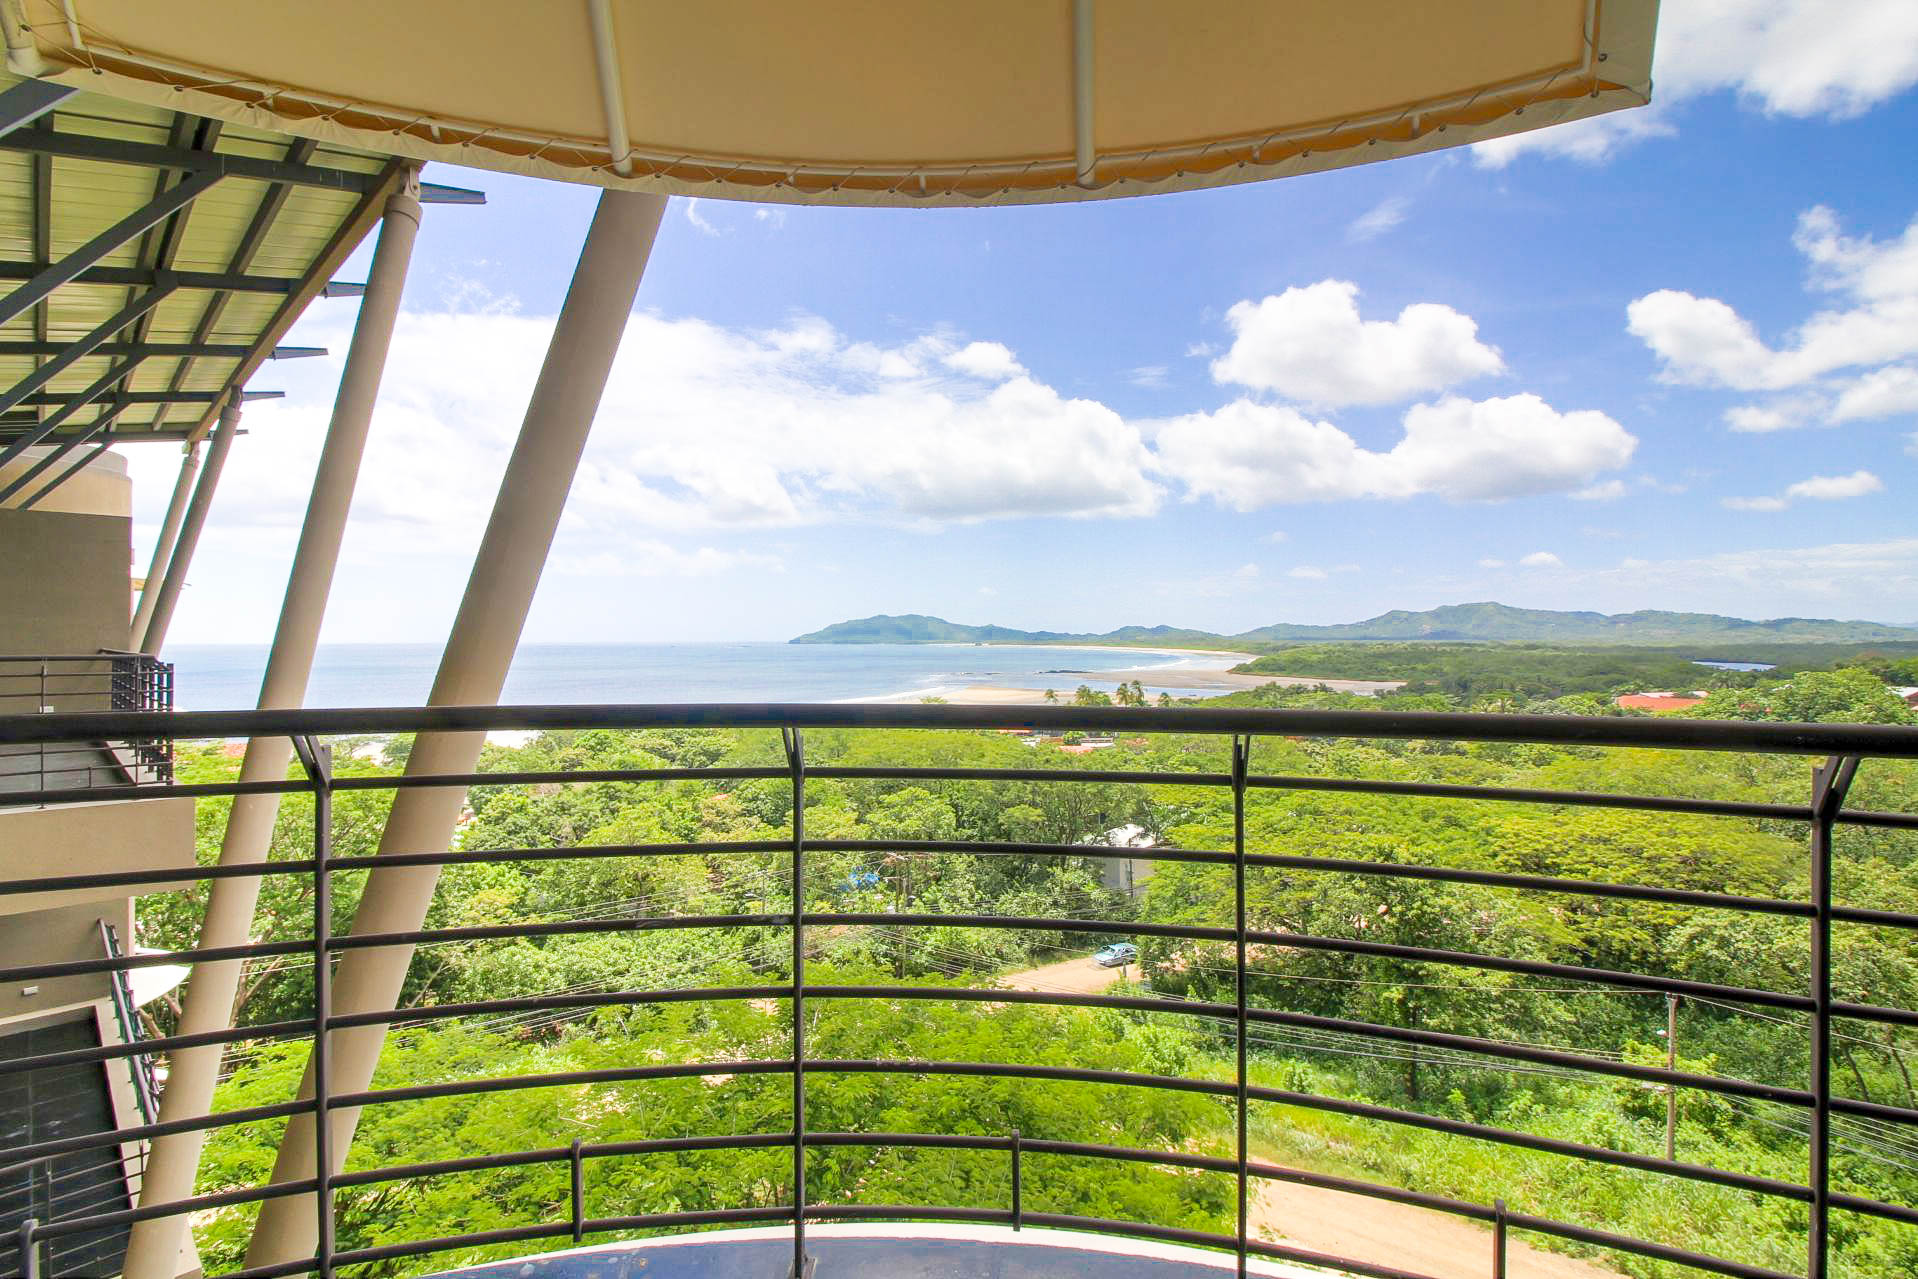 Spectacular view of Tamarindo and Playa Grande